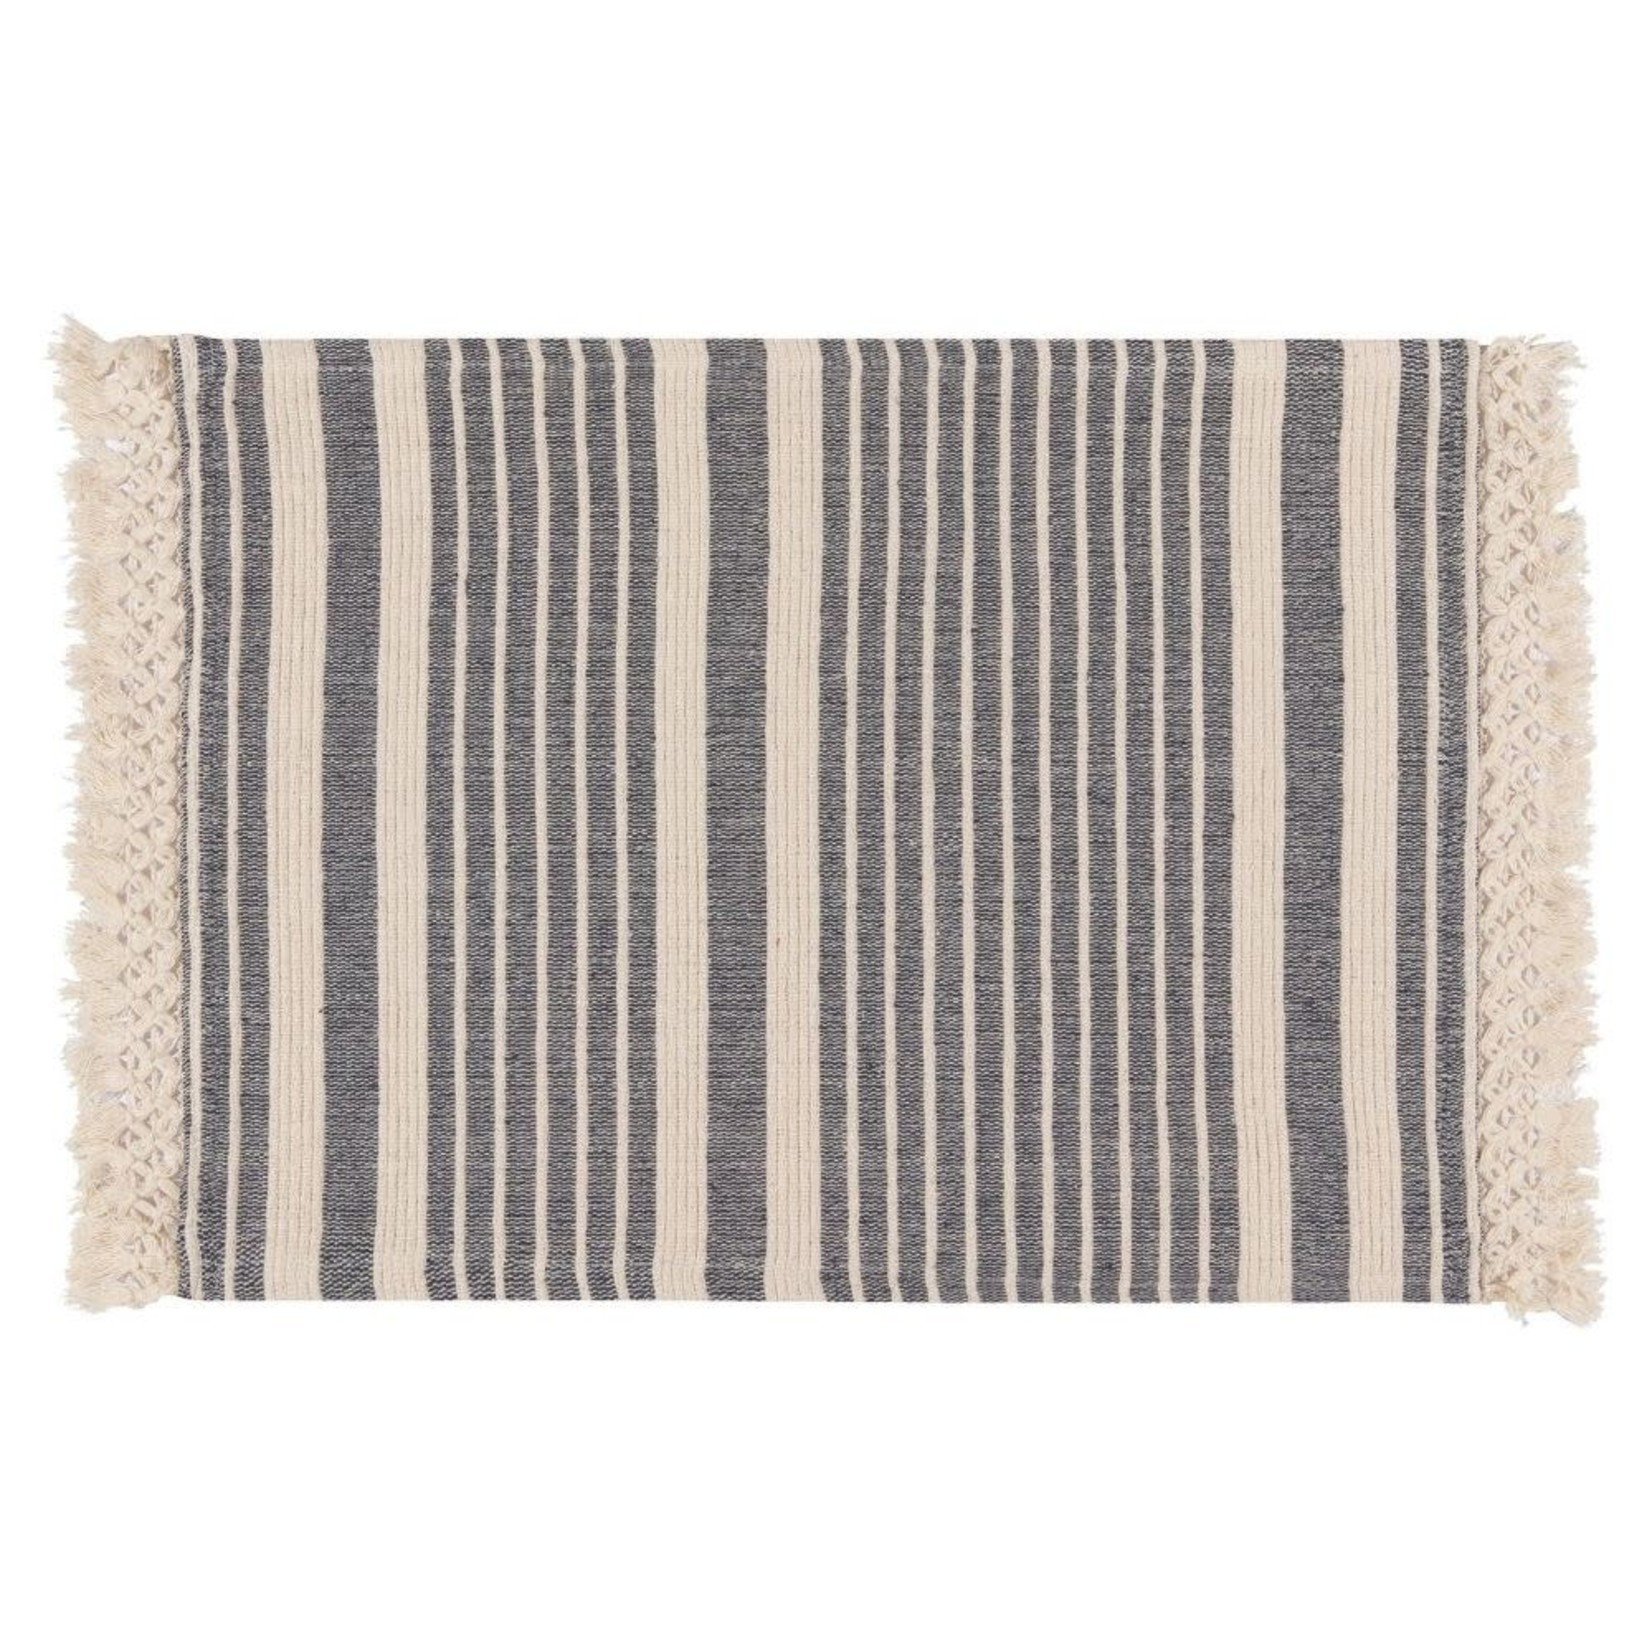 Now Designs Piper Heirloom Placemats Set of 4 in Midnight